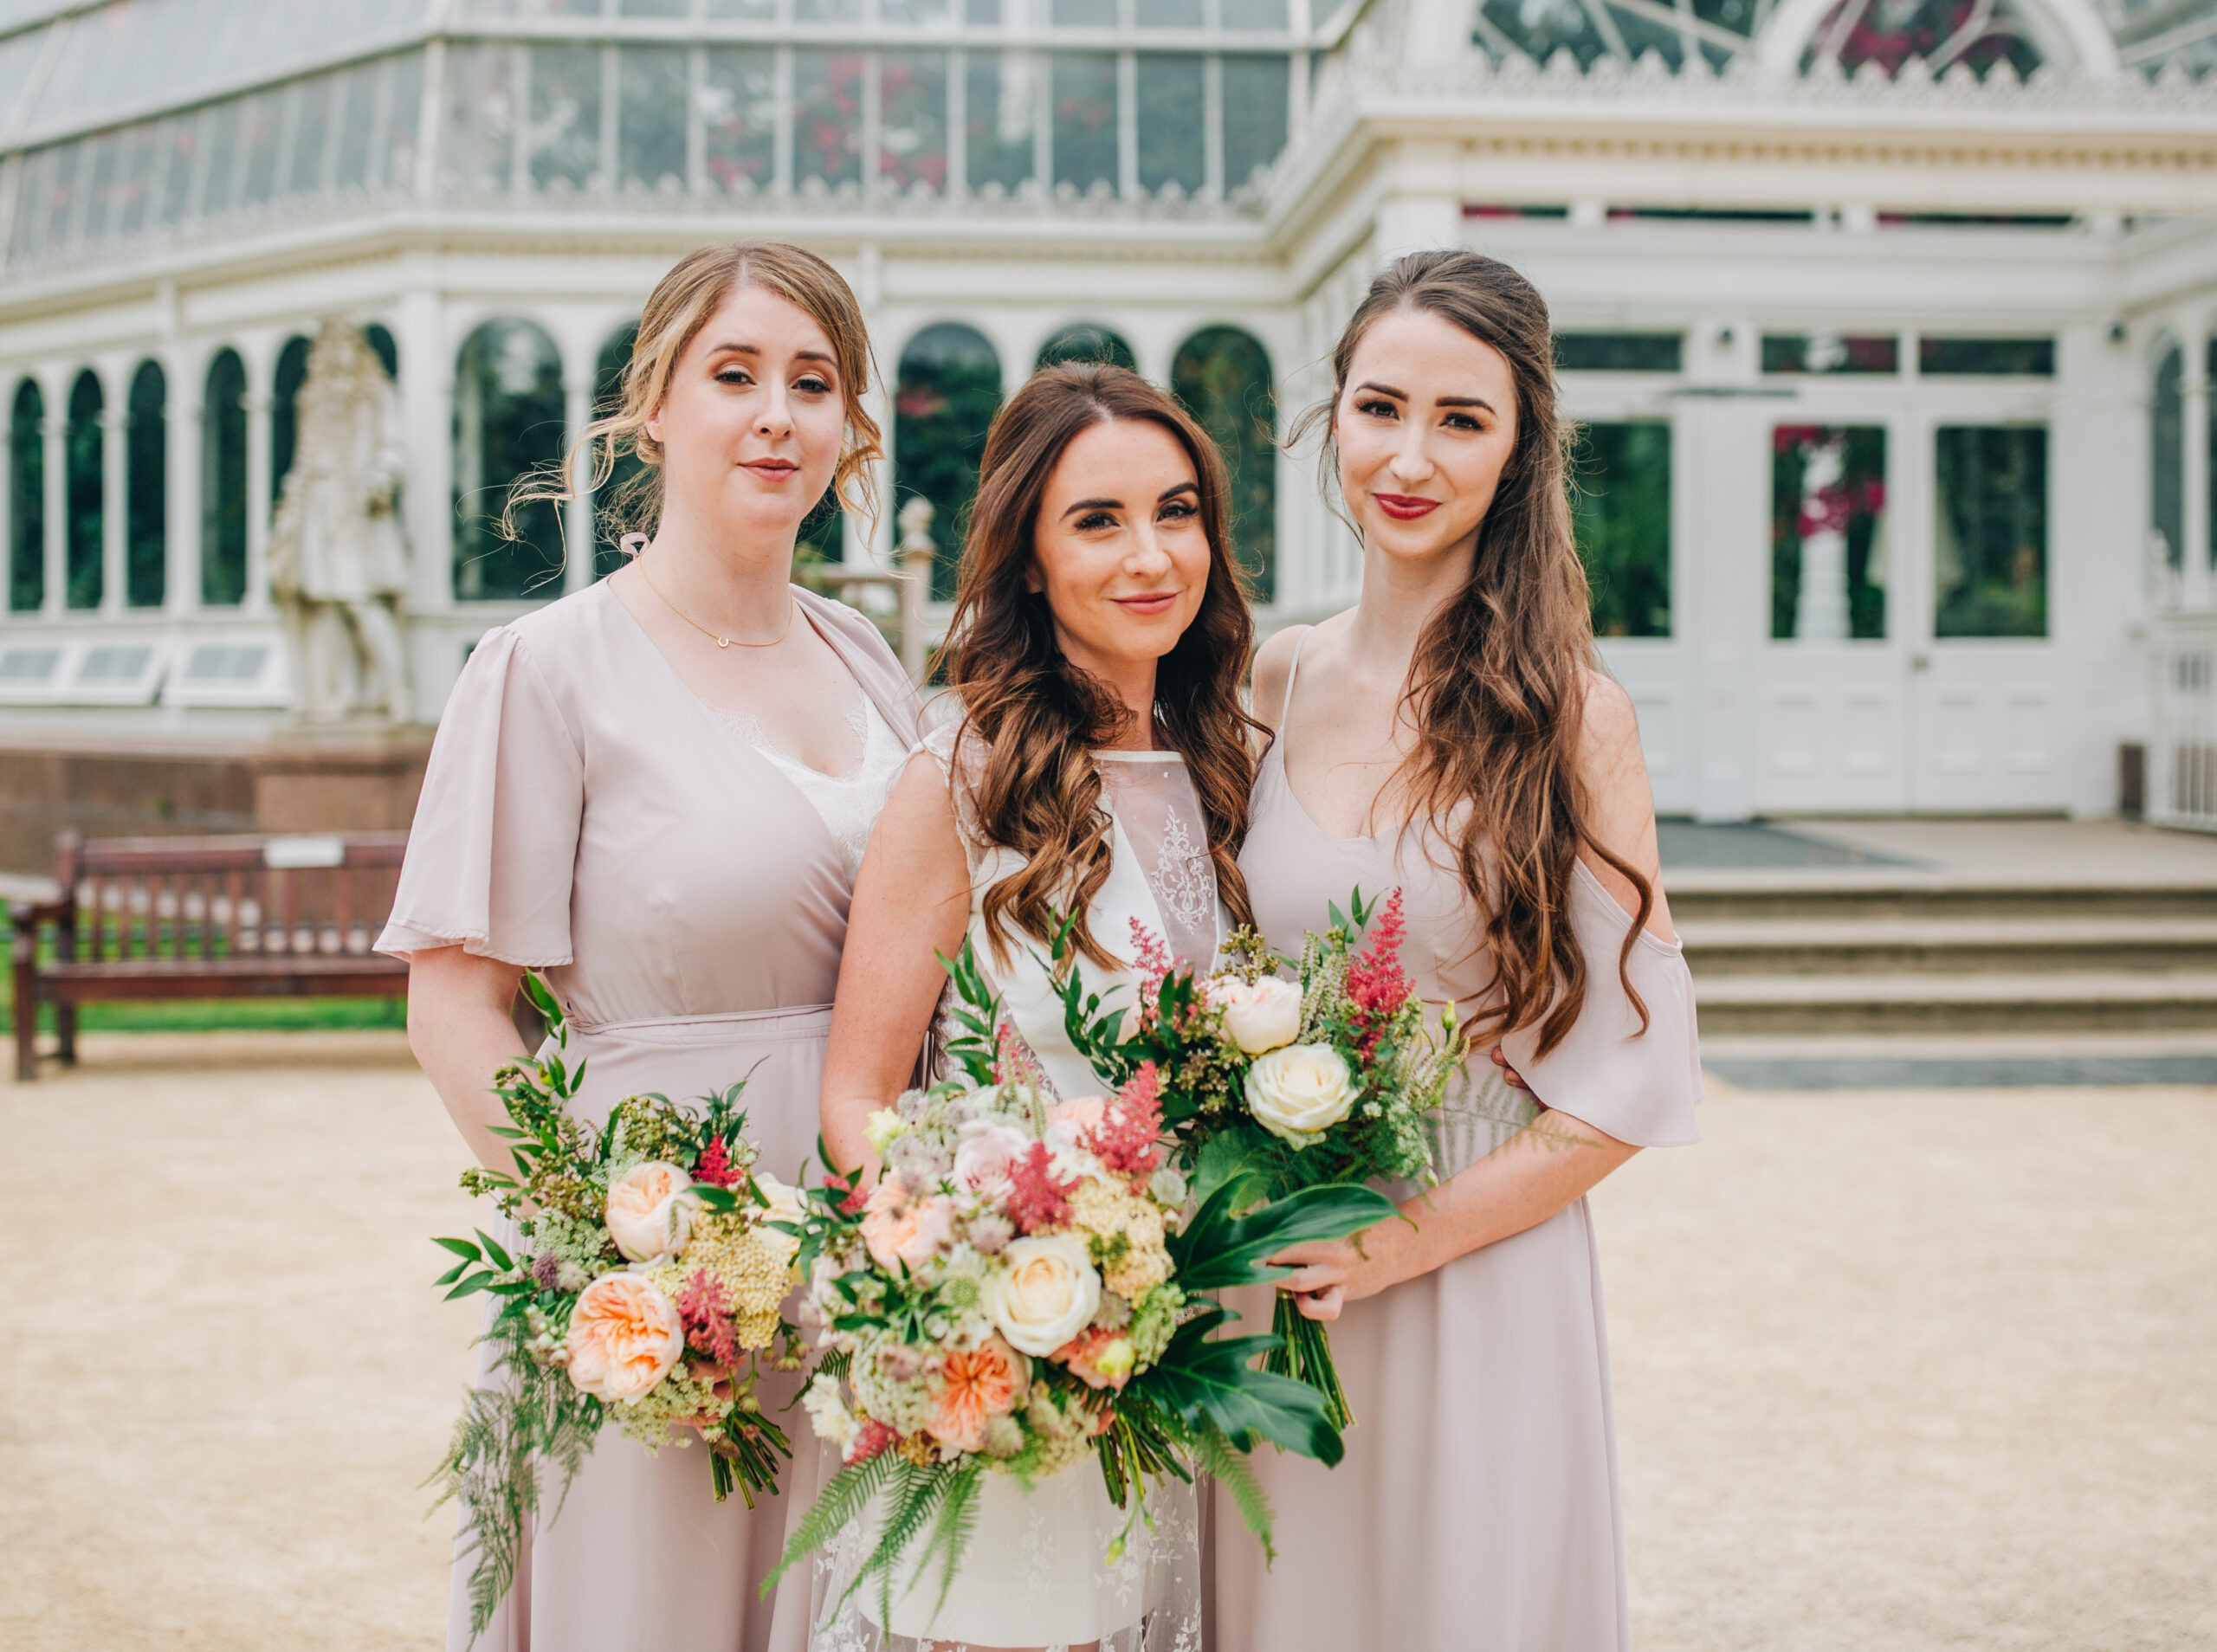 Sefton Park Palm House wedding makeup artist Liverpool